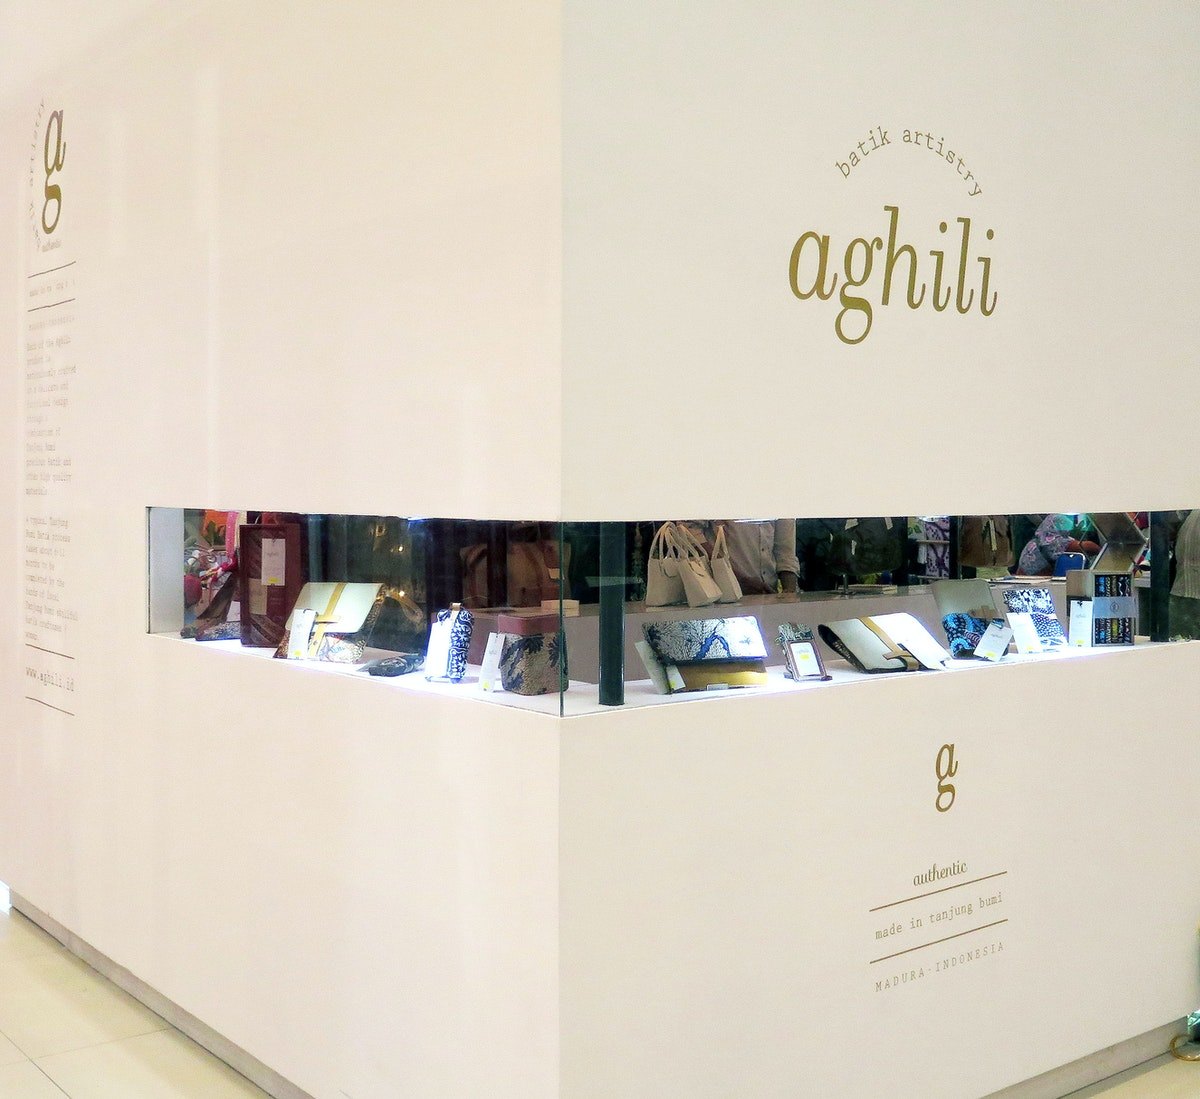 aghili prototype launched